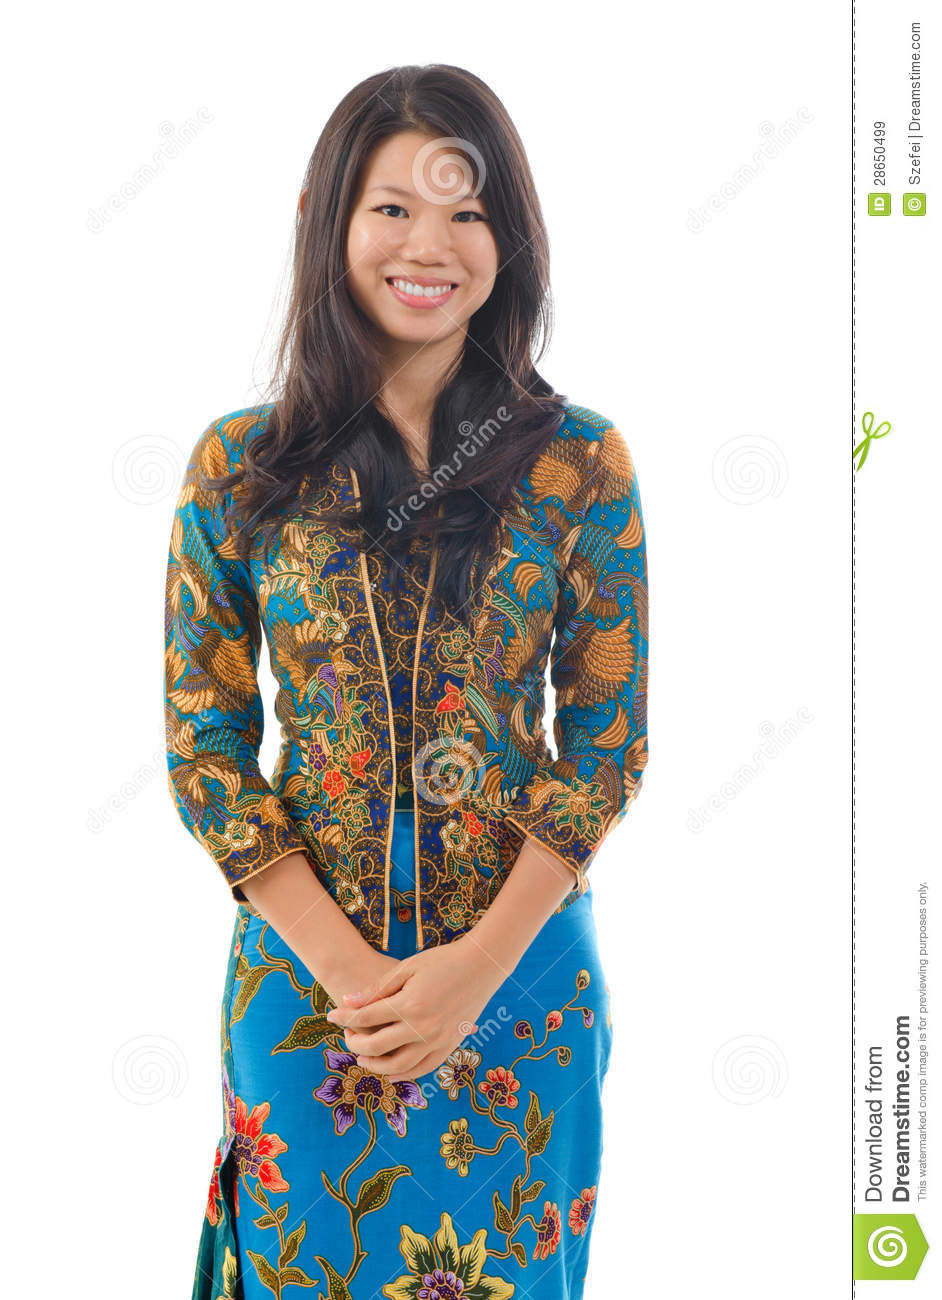 fort ann asian personals Find american indian women seeking men listings in miami on oodle classifieds join millions of people using oodle to find great personal ads don't miss what's happening in your neighborhood.